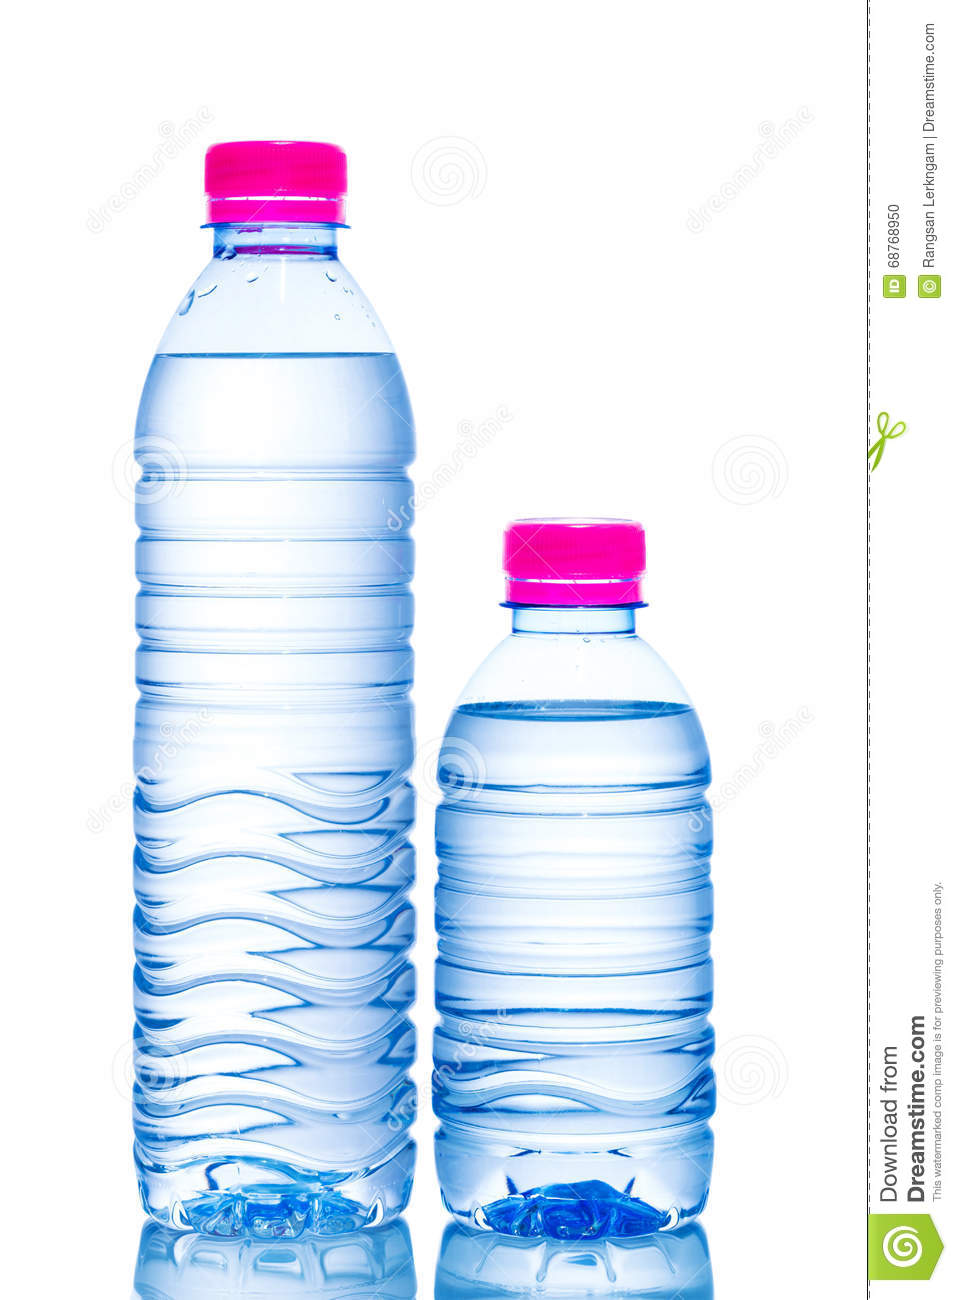 bottled water 2 essay Read this essay on thai bottled water come browse our large digital warehouse of free sample essays get the knowledge you need in order to pass your classes and more.